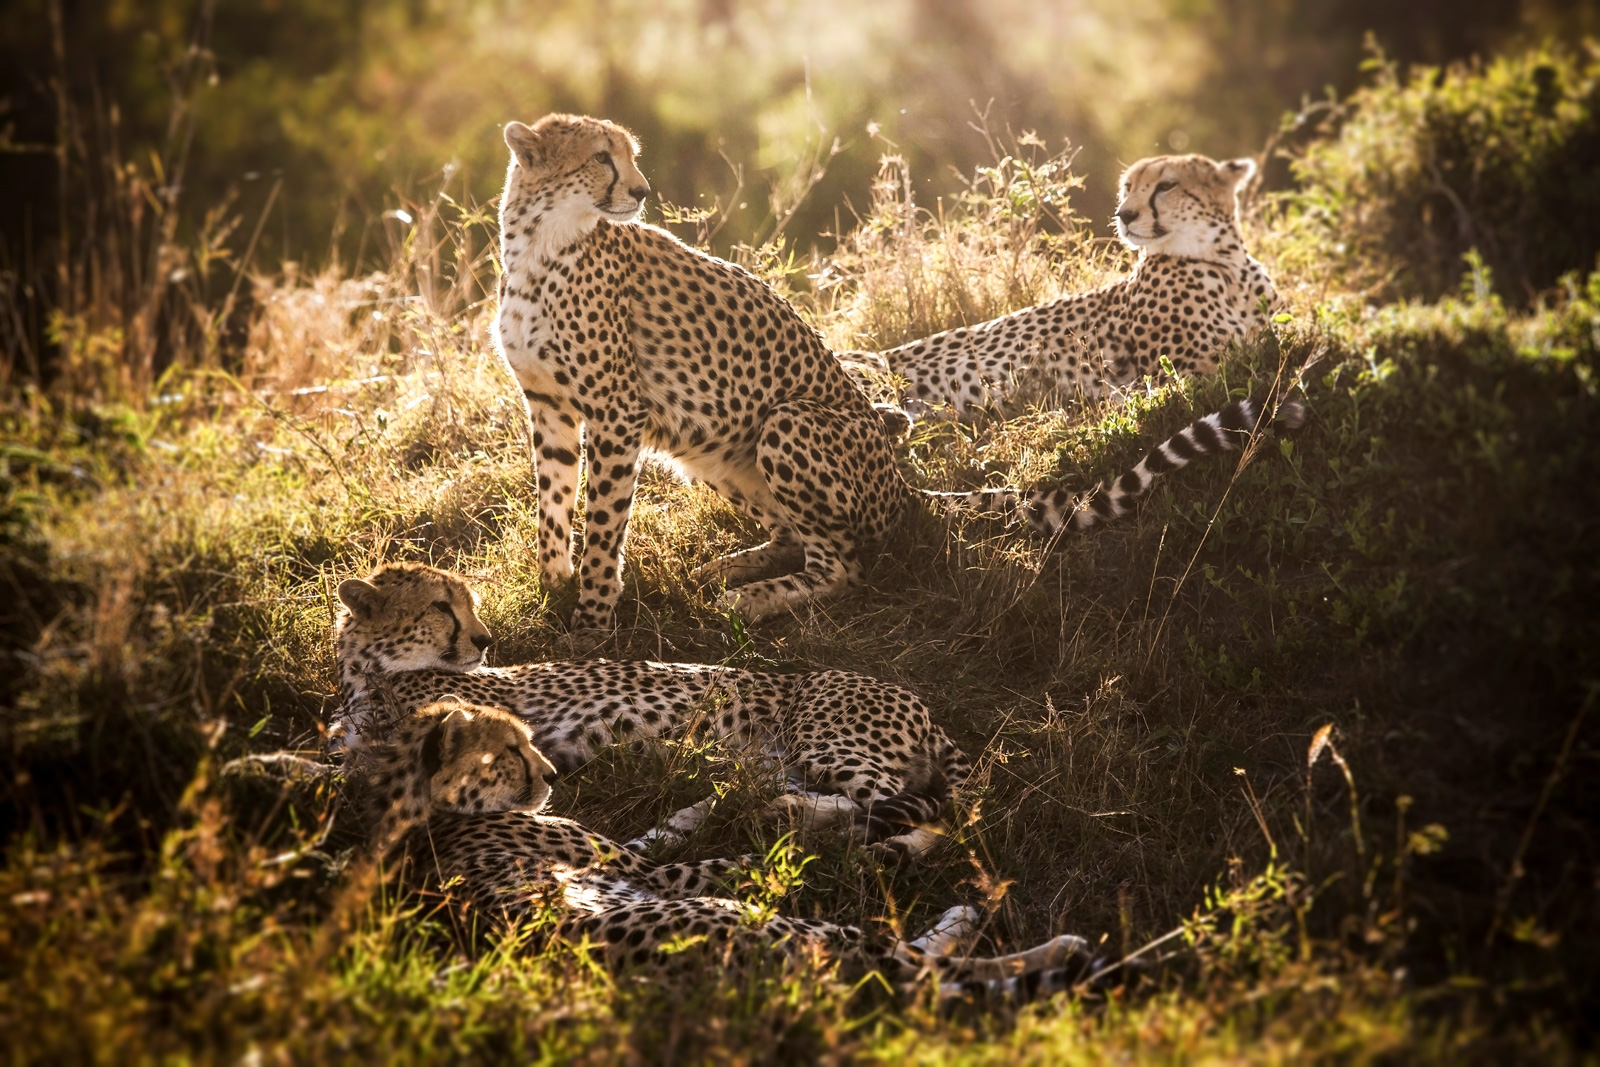 "Cheetahs are one of the most threatened cats in Africa. We must continue working hard to protect their diminishing populations © <a href=""http://bjornpersson.nu/"" target=""_blank"">Björn Persson</a>"